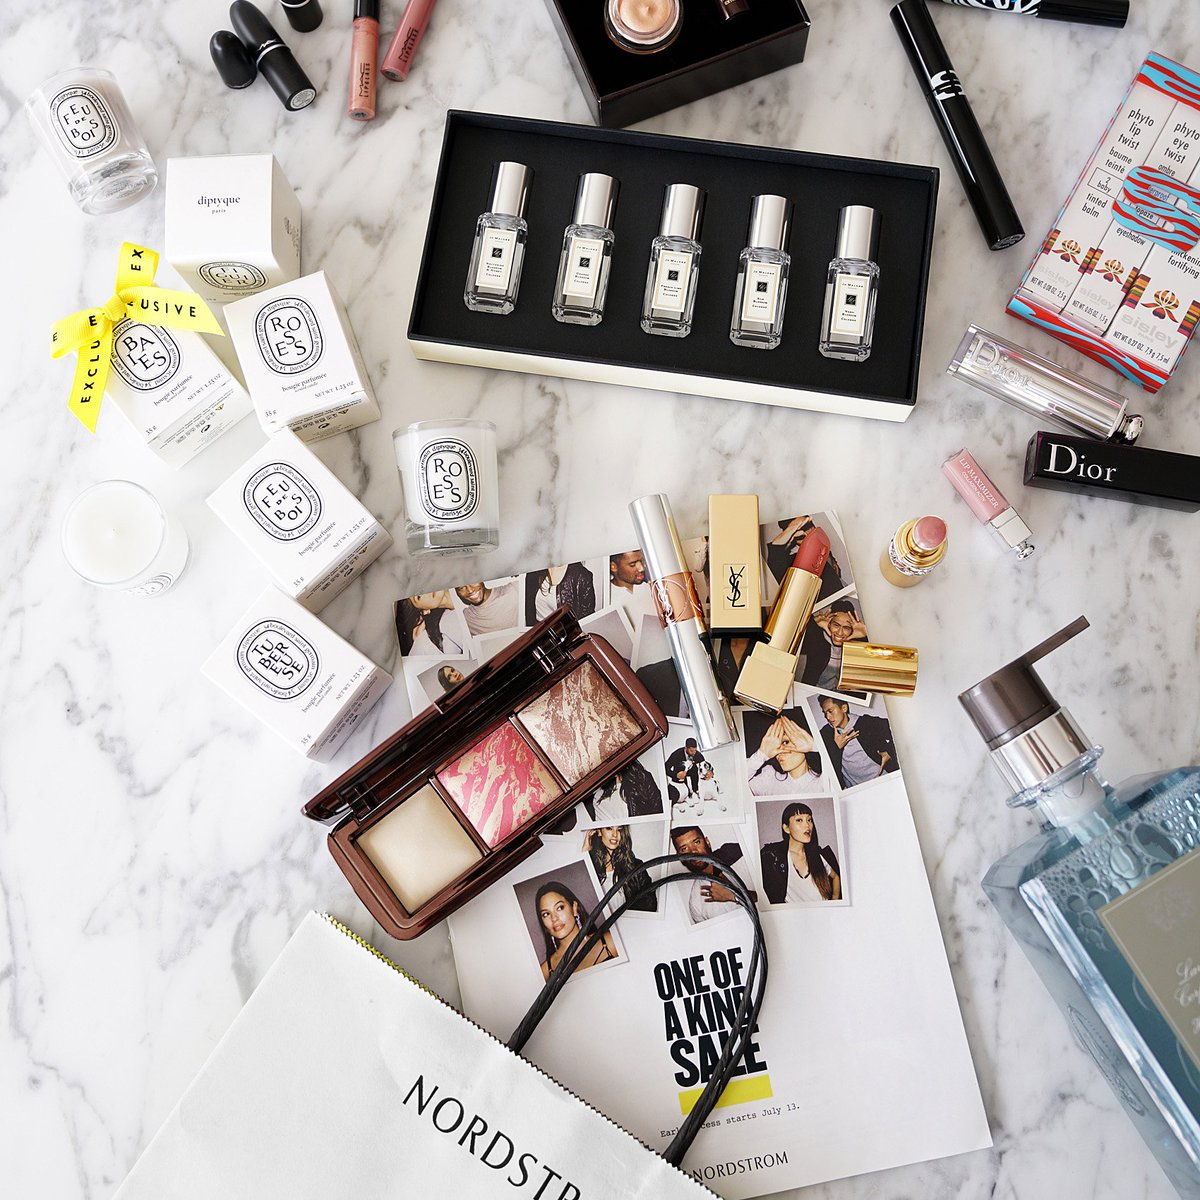 My beauty exclusives @nordstrom anniversary sale haul up on the blog today! https://t.co/WXzo6TAwjr https://t.co/V53KFKNokF